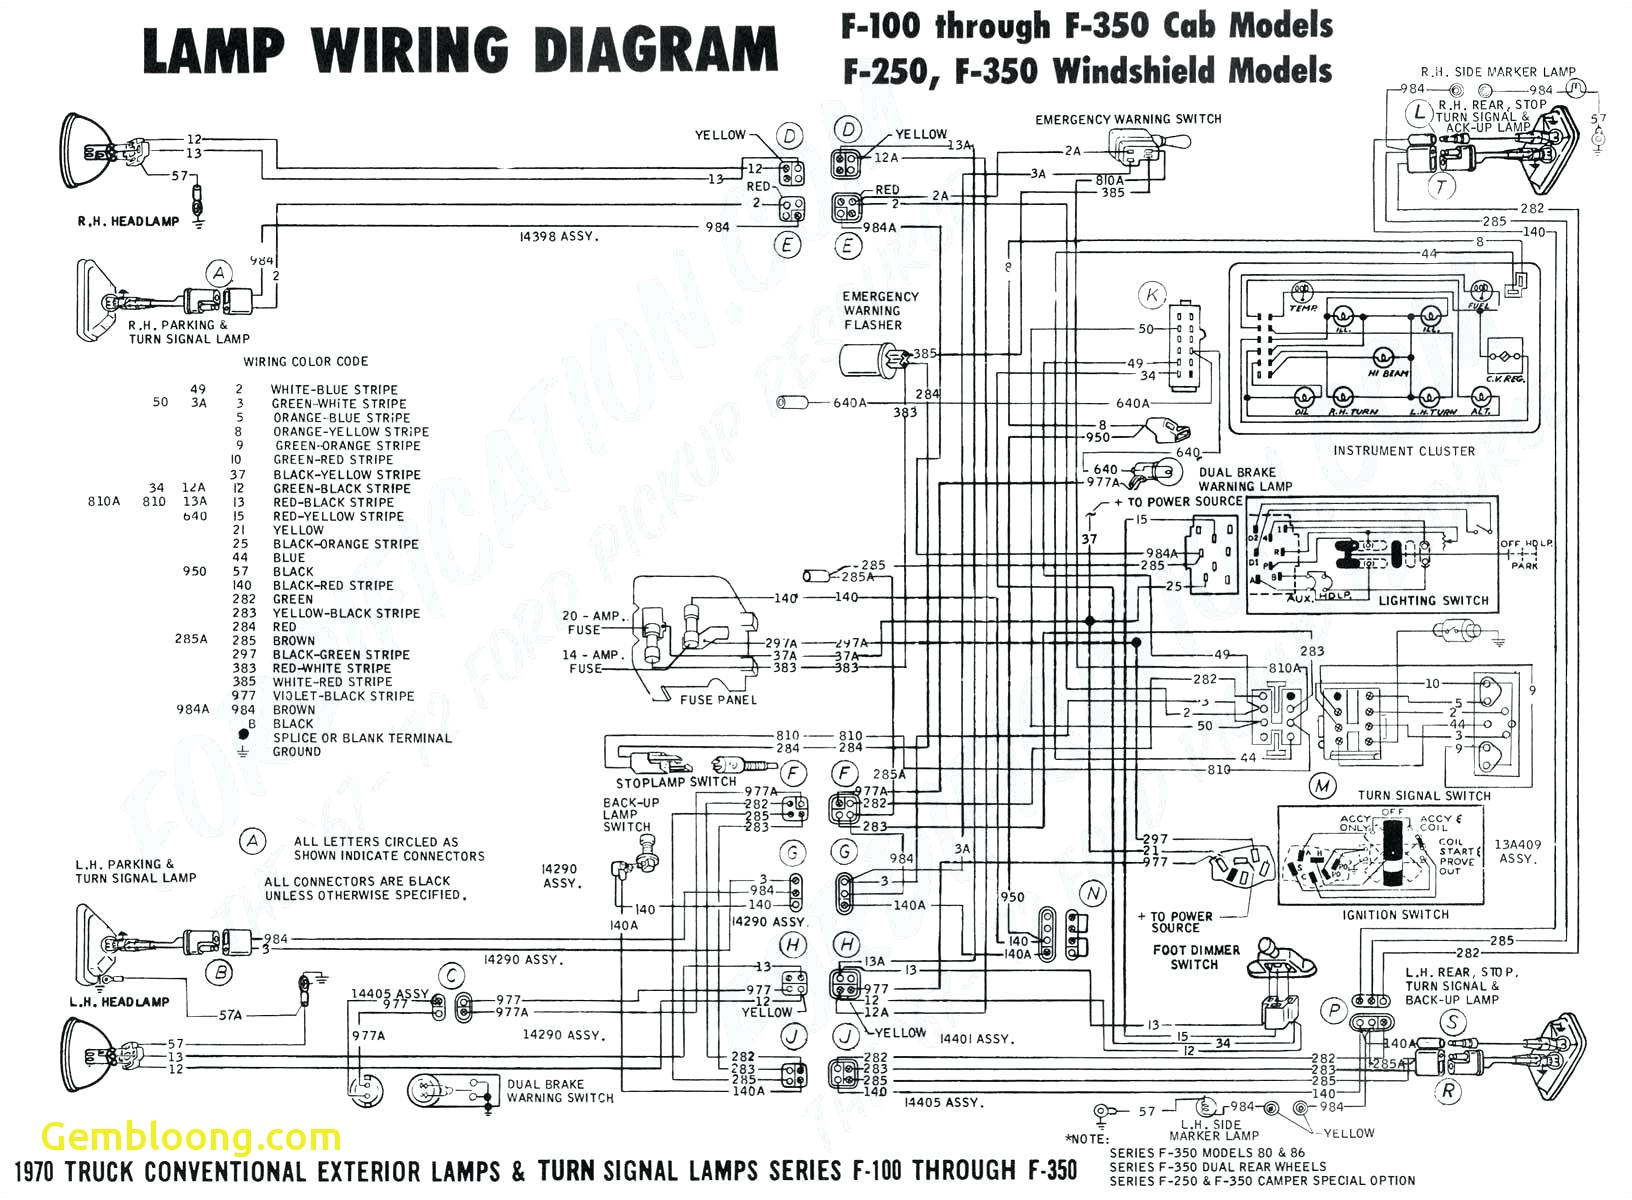 wiring diagrams in addition wireless bluetooth stereo headset on wiring diagram in addition wiring led lights